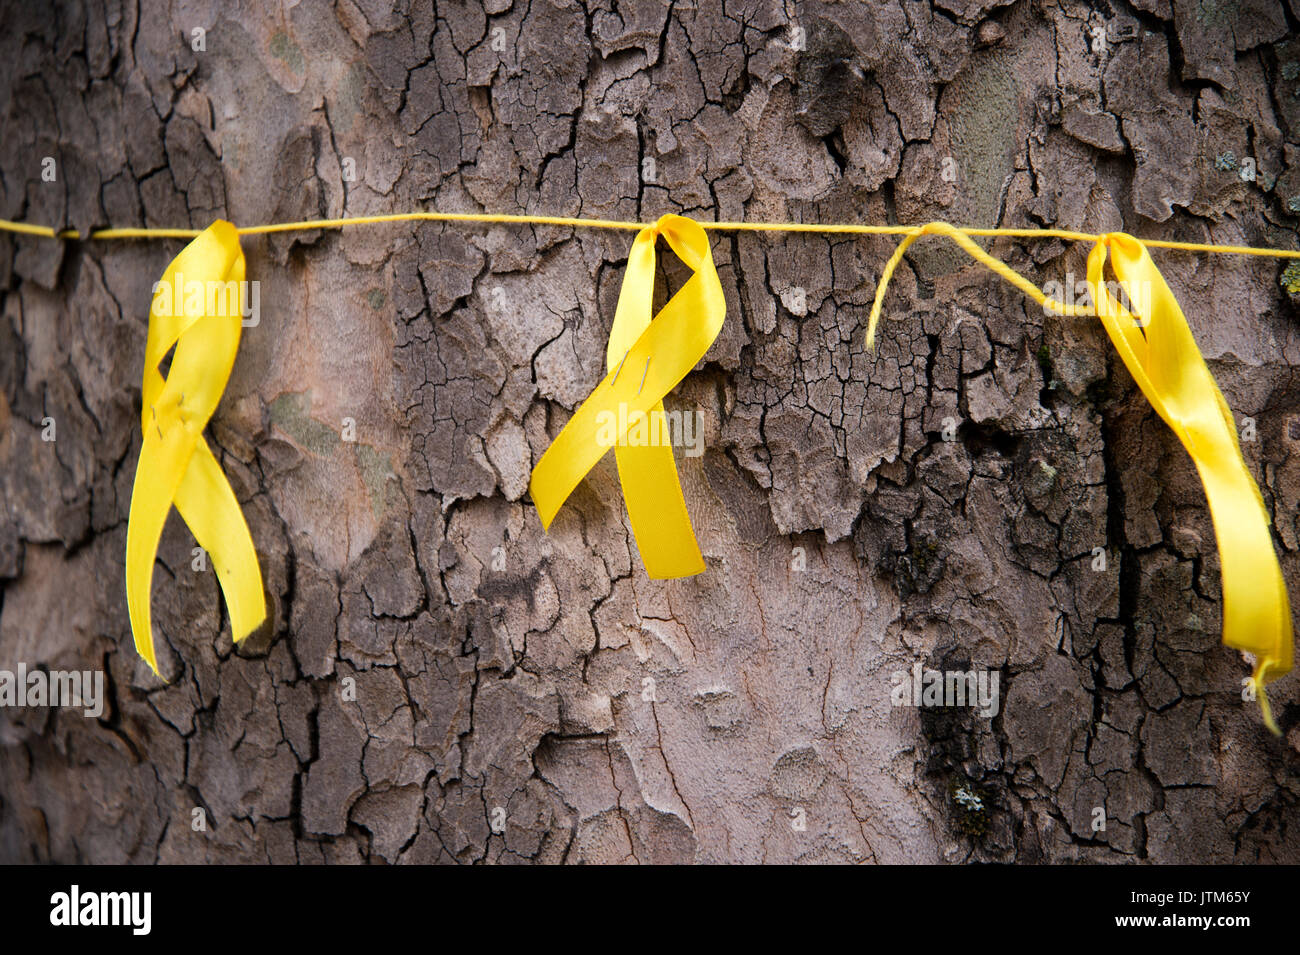 Grenfell Tower, West London. Aftermath of the tragedy. Yellow ribbons to honour the missing tied around a tree near the burnt-out tower. - Stock Image